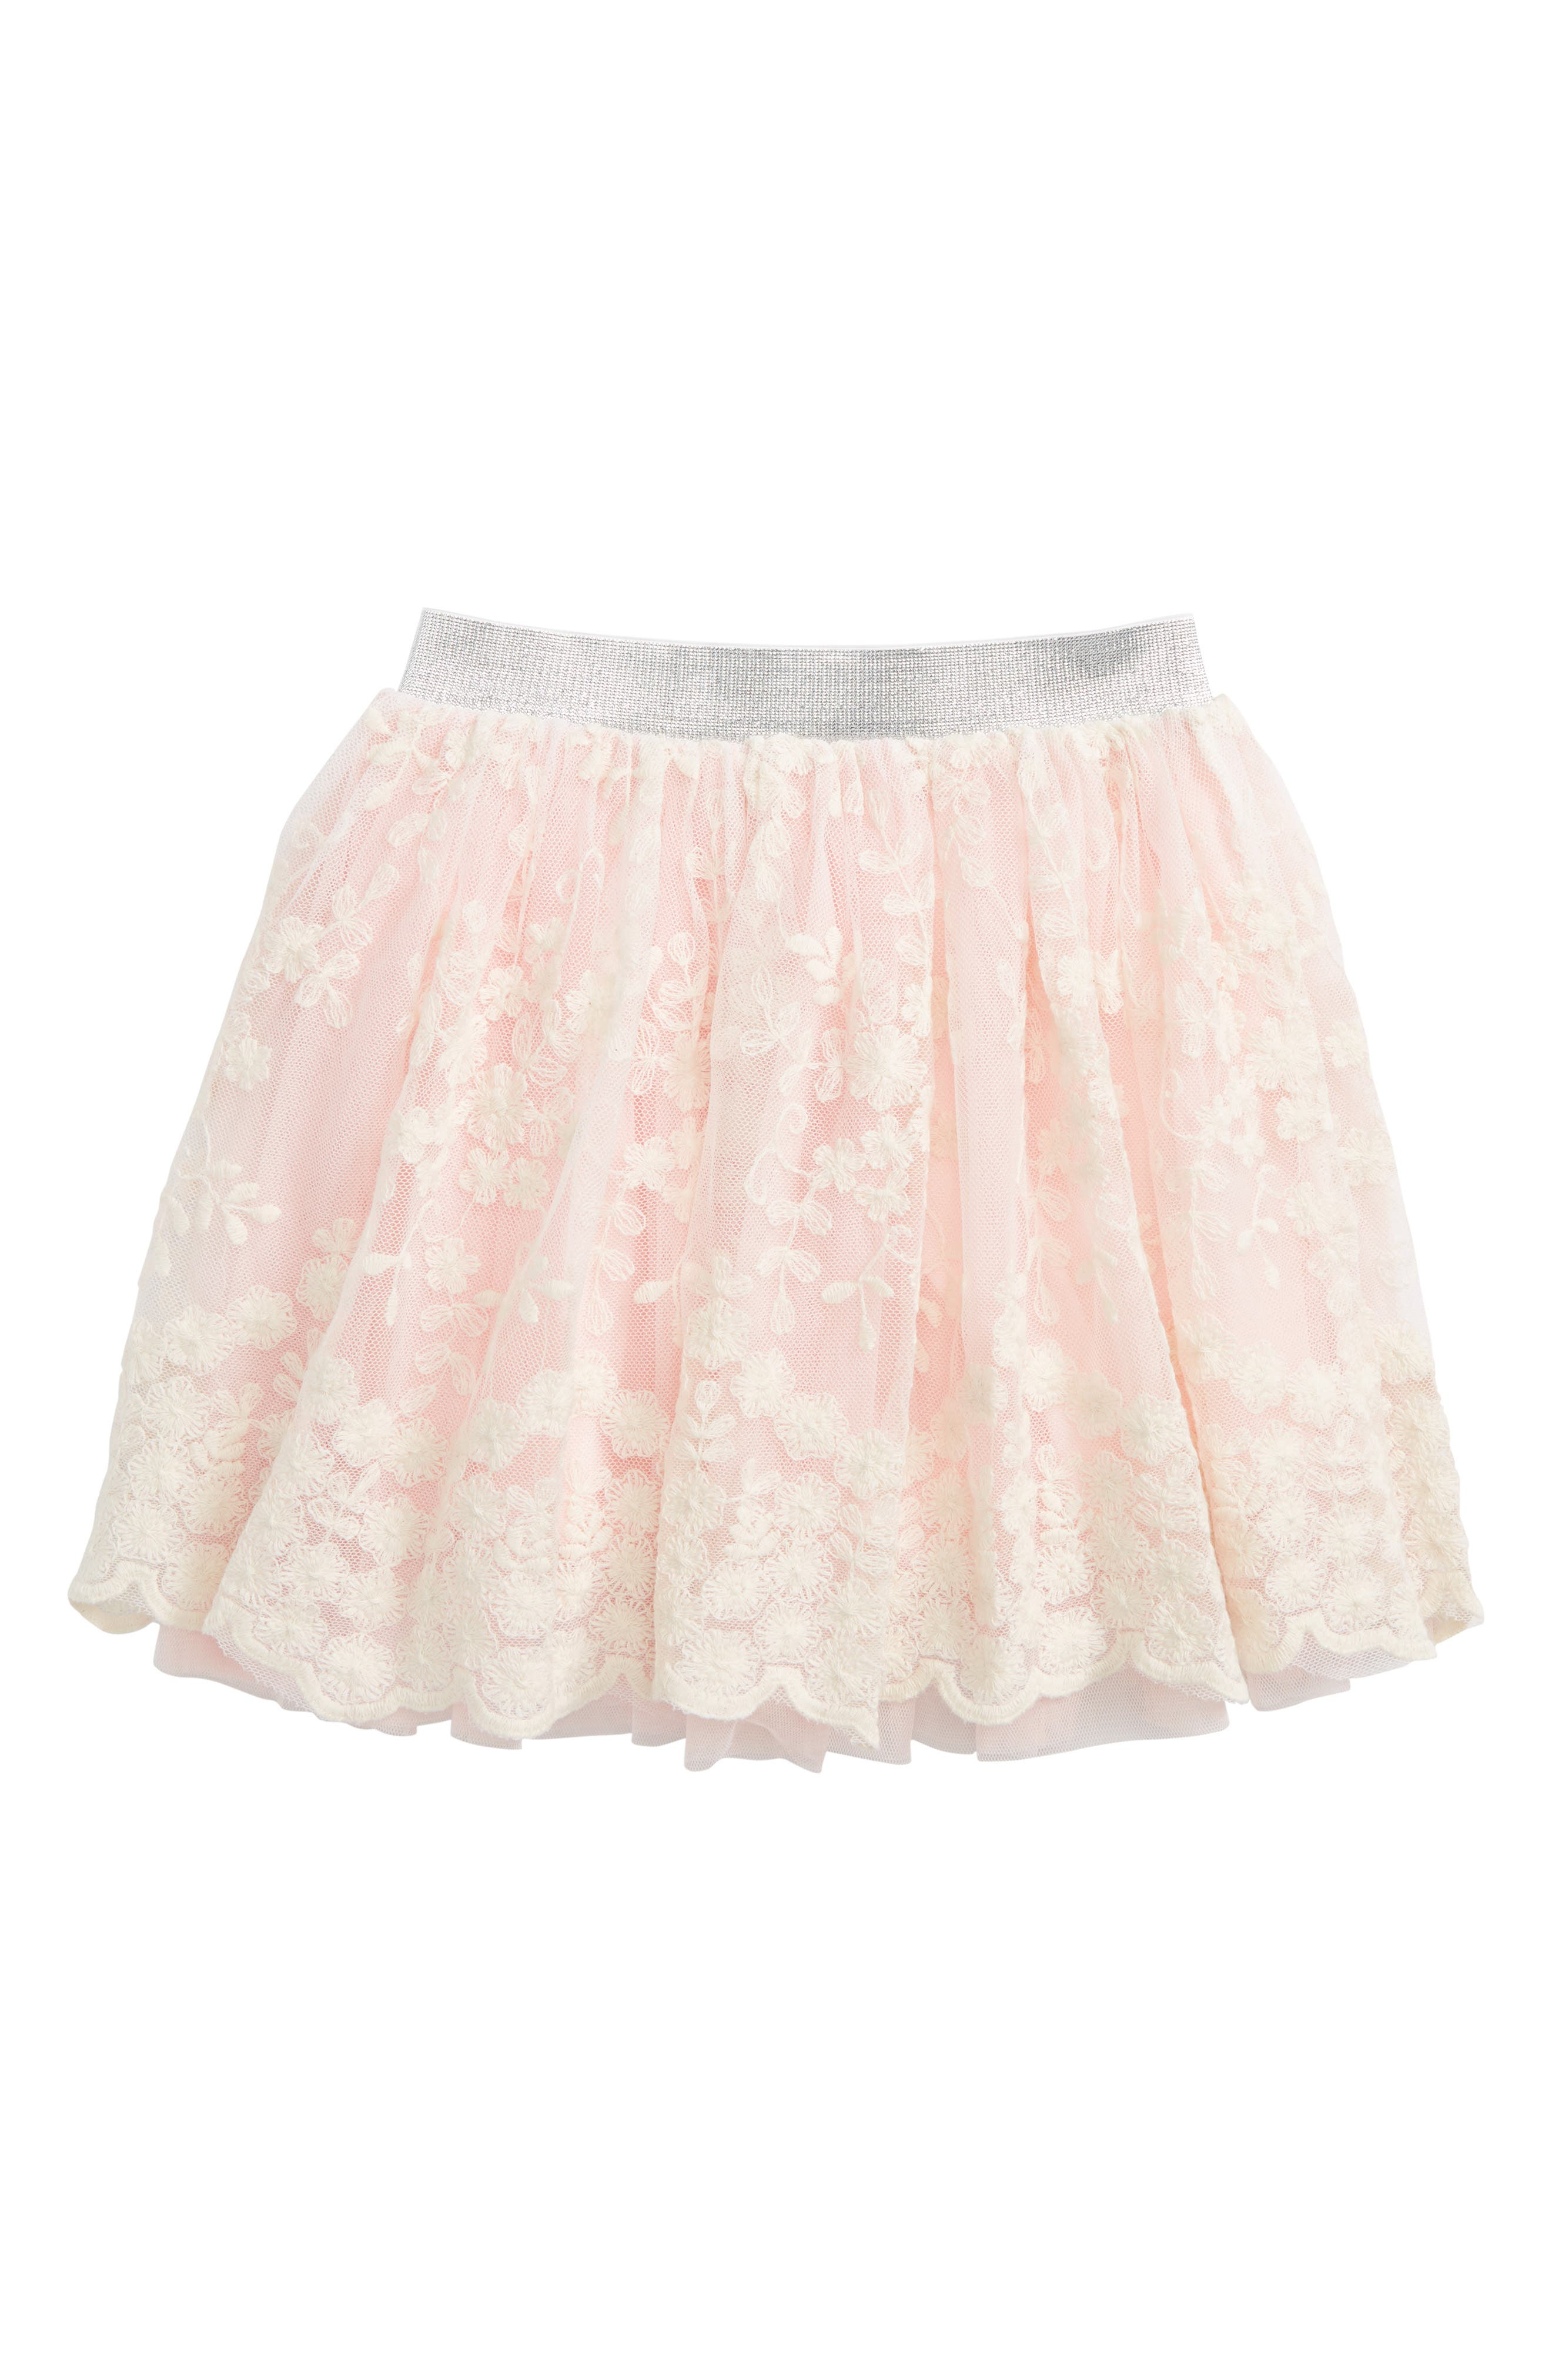 Floral Lace Skirt,                             Main thumbnail 1, color,                             900